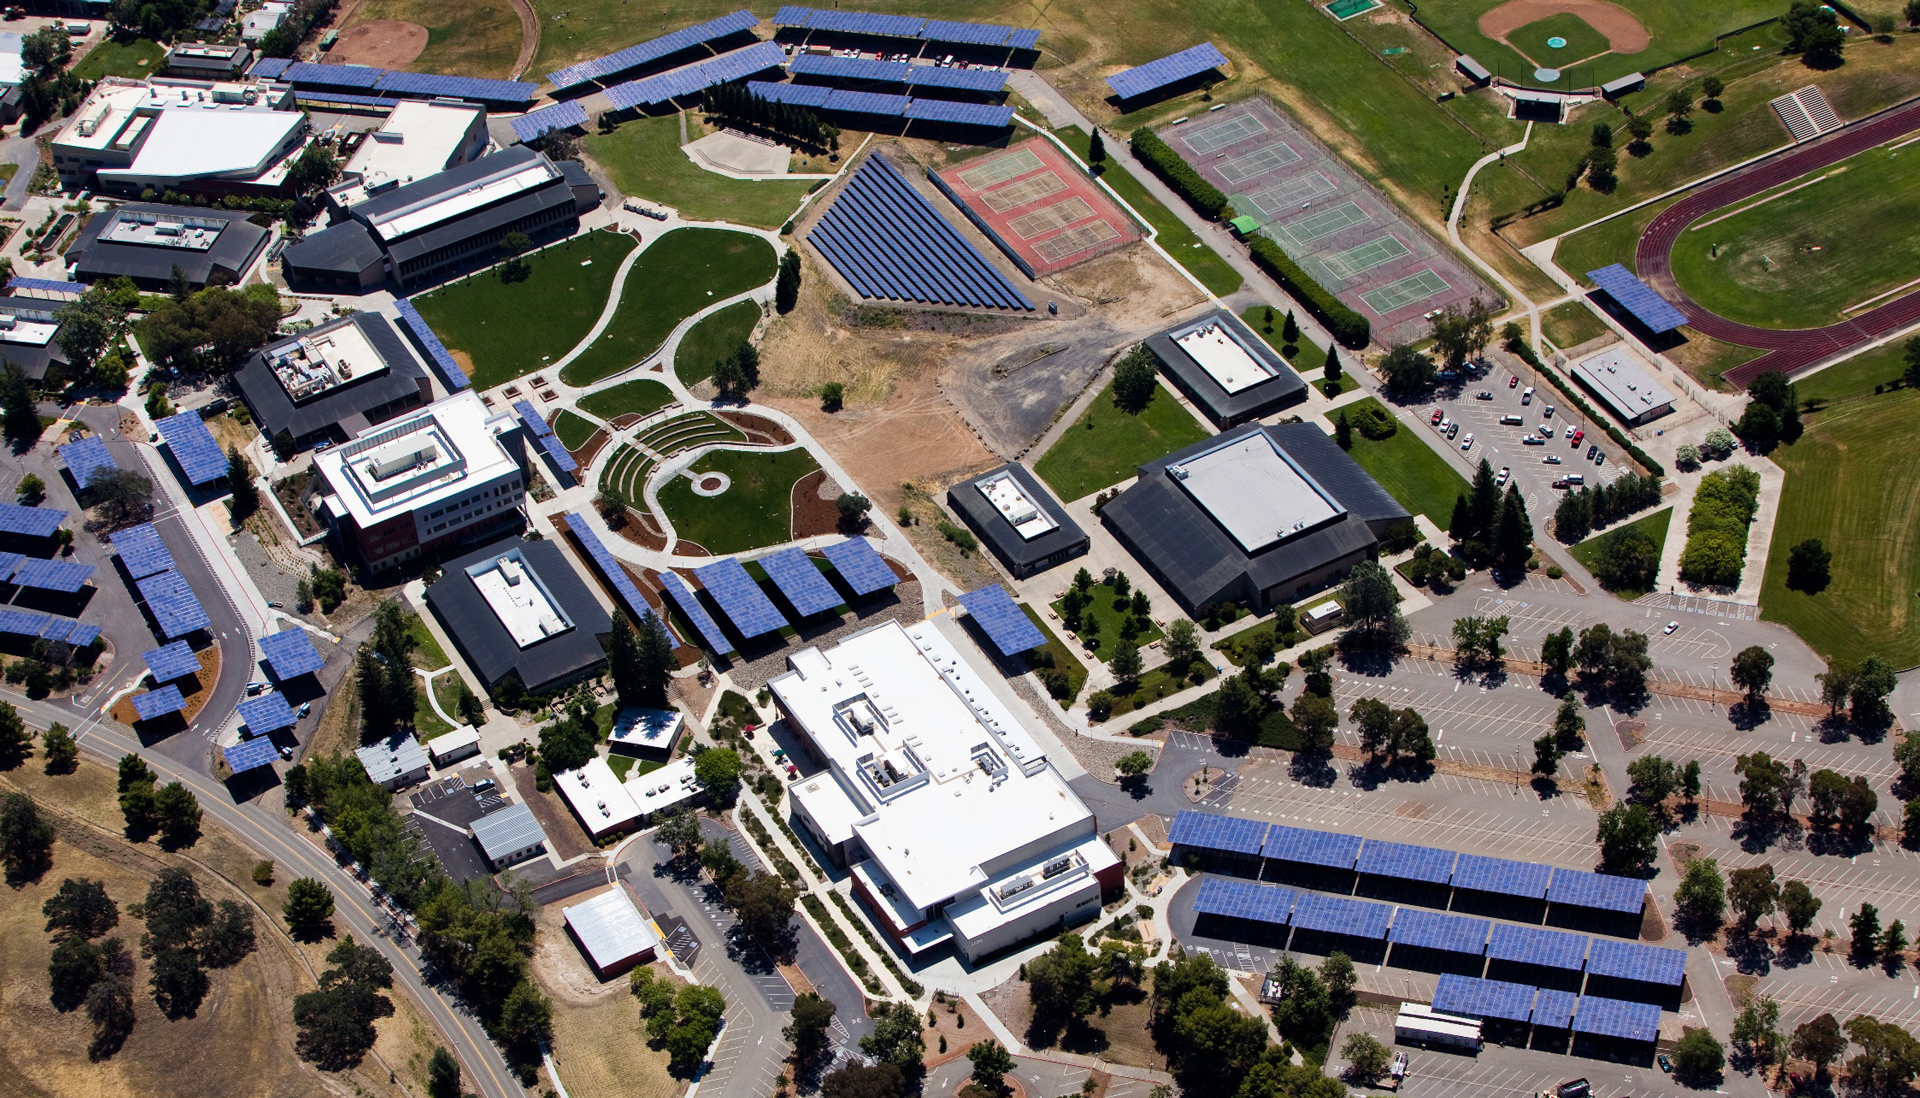 birds-eye-view of solar panel project